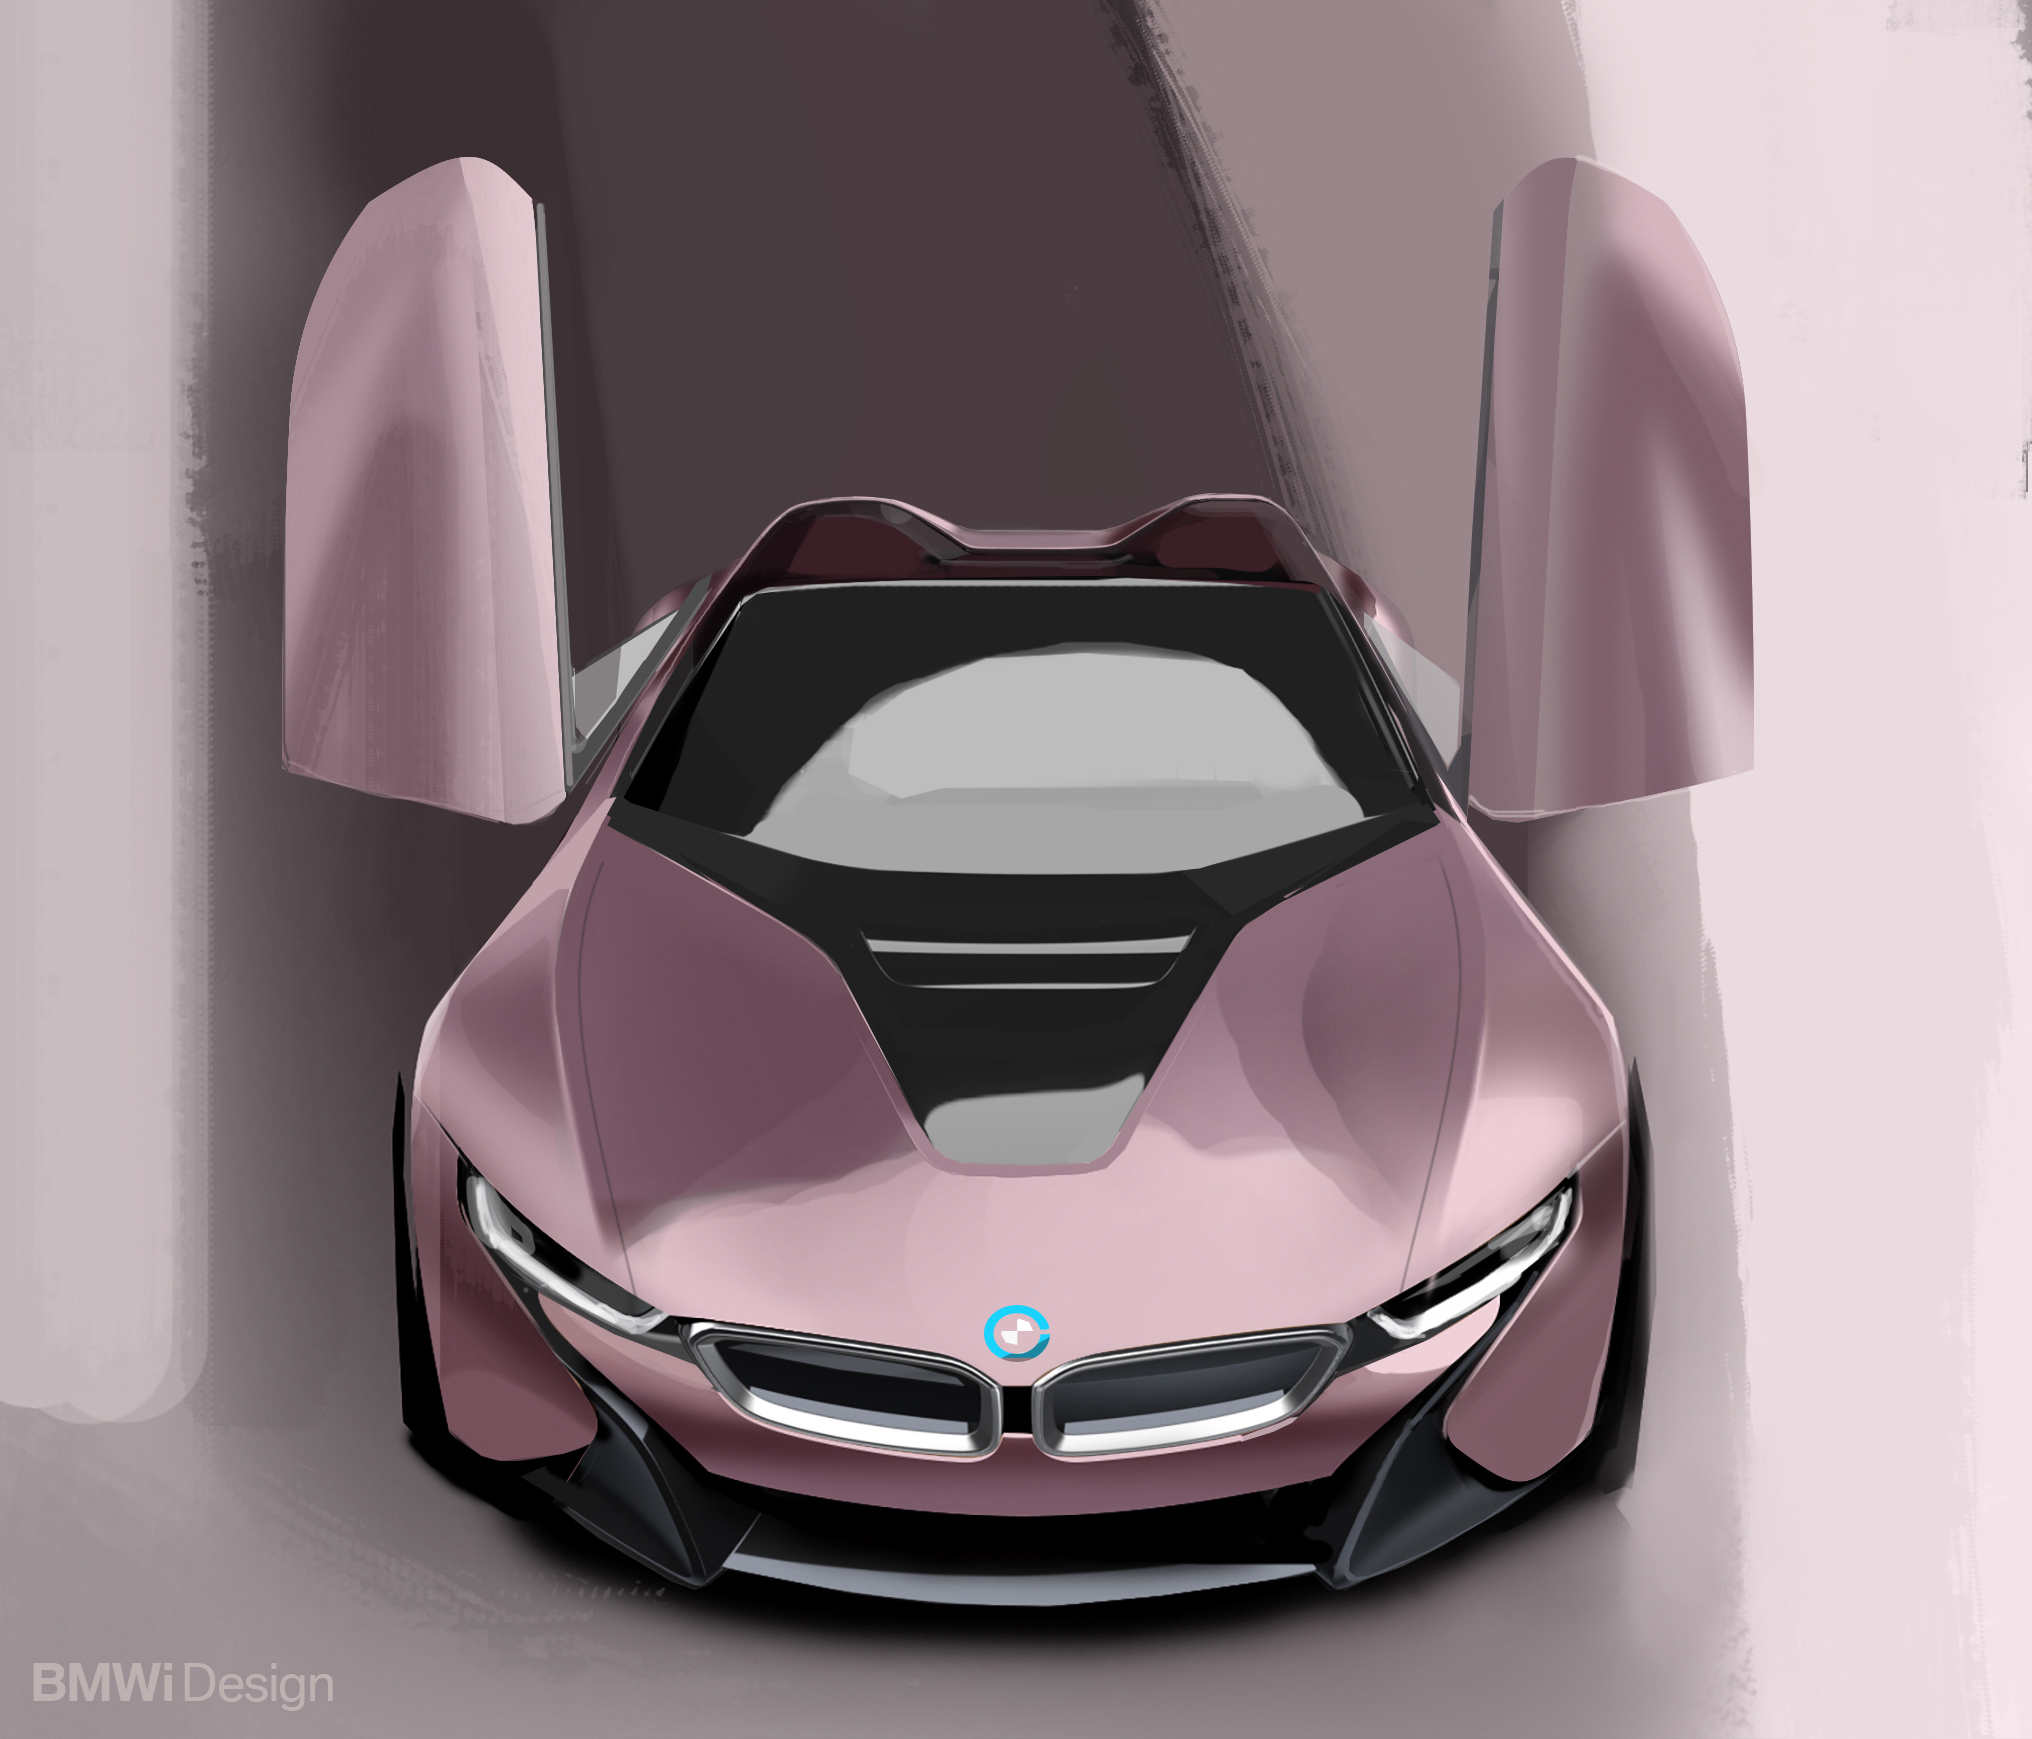 BMW i8 Roadster - 2017 - sketch design - front